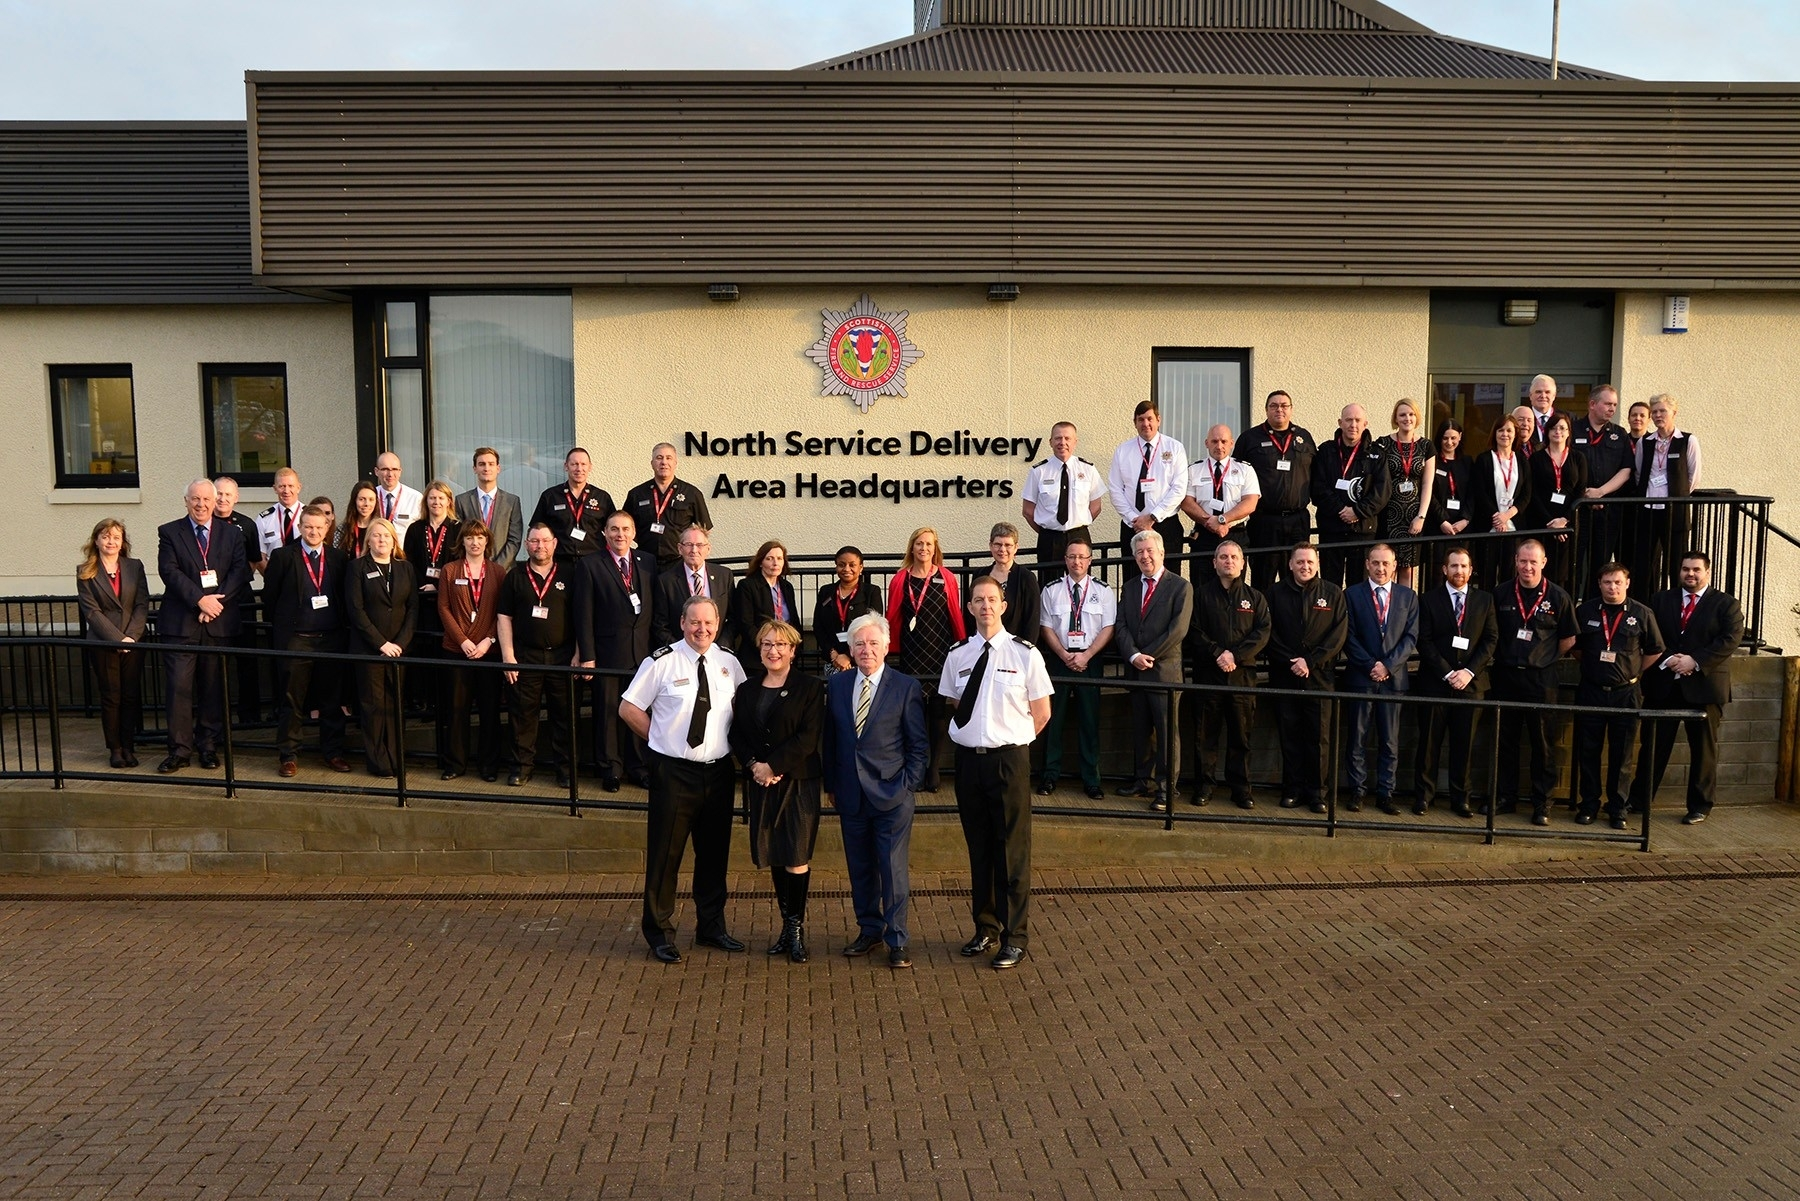 The £1million northern base for Scottish Fire and Rescue at Dyce was given a ceremonial launch by community safety minister Annabelle Ewing.